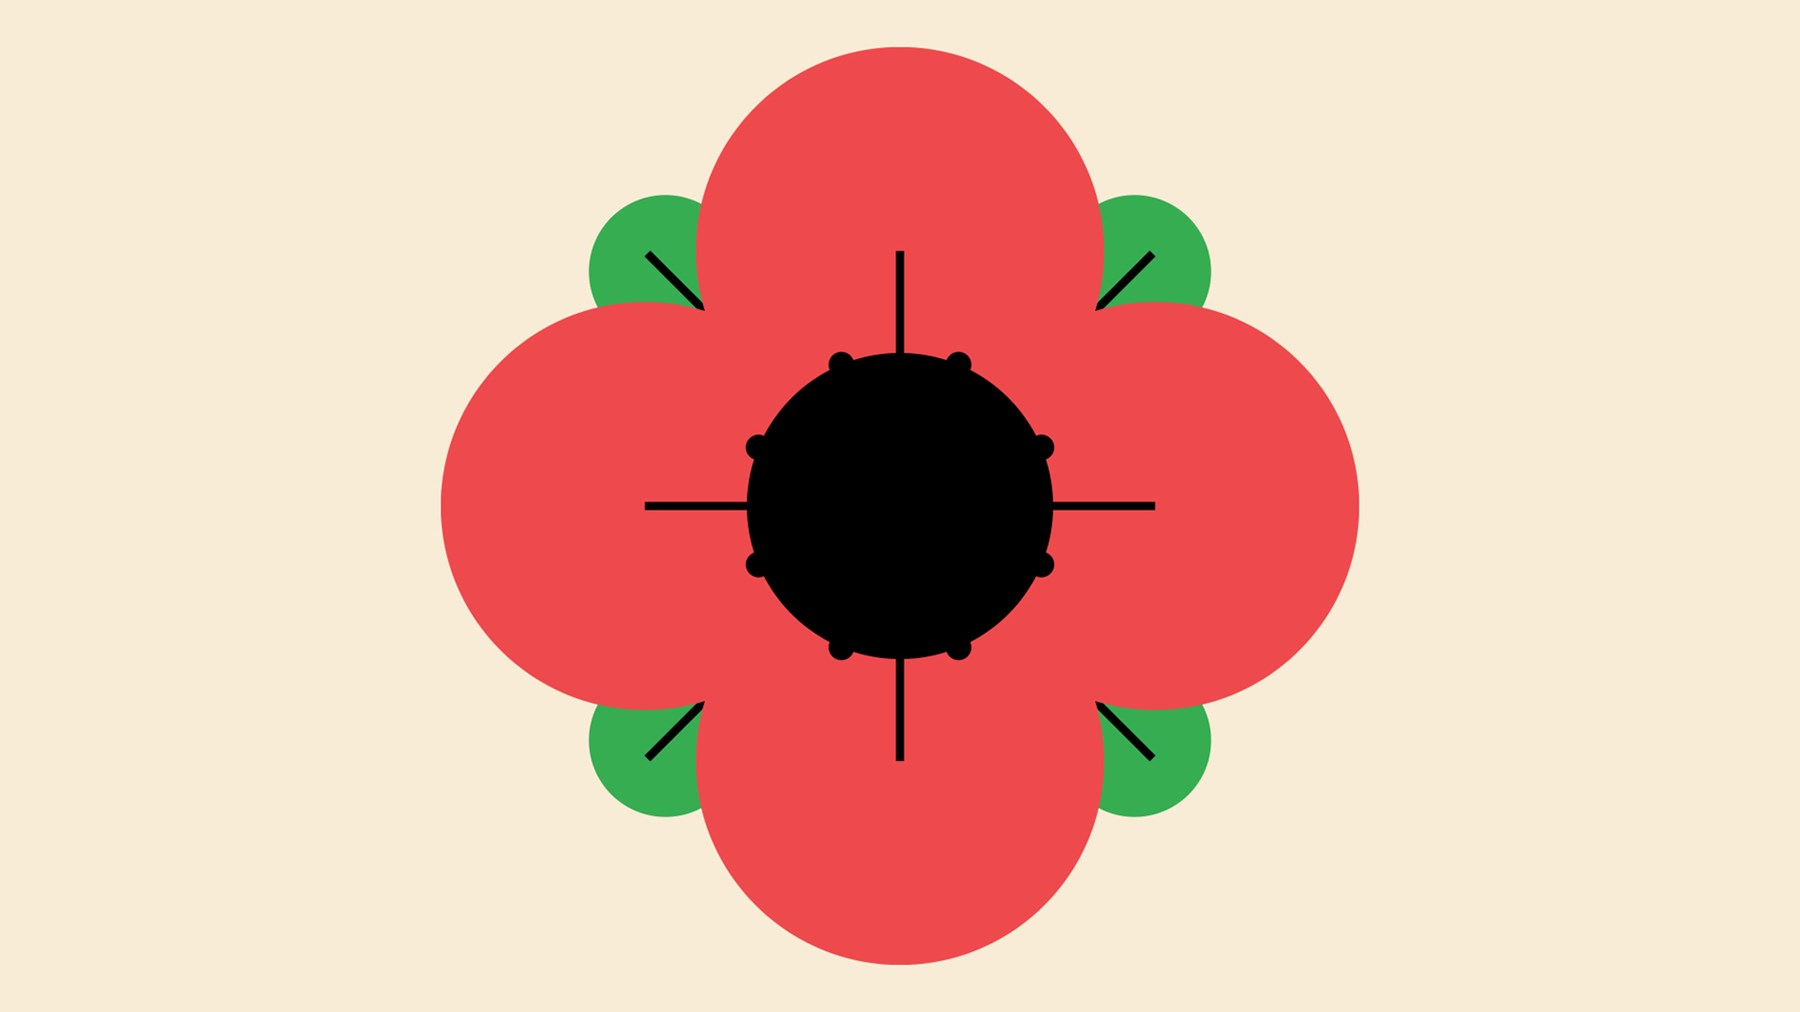 An illustration of a poppy on a magnolia background.